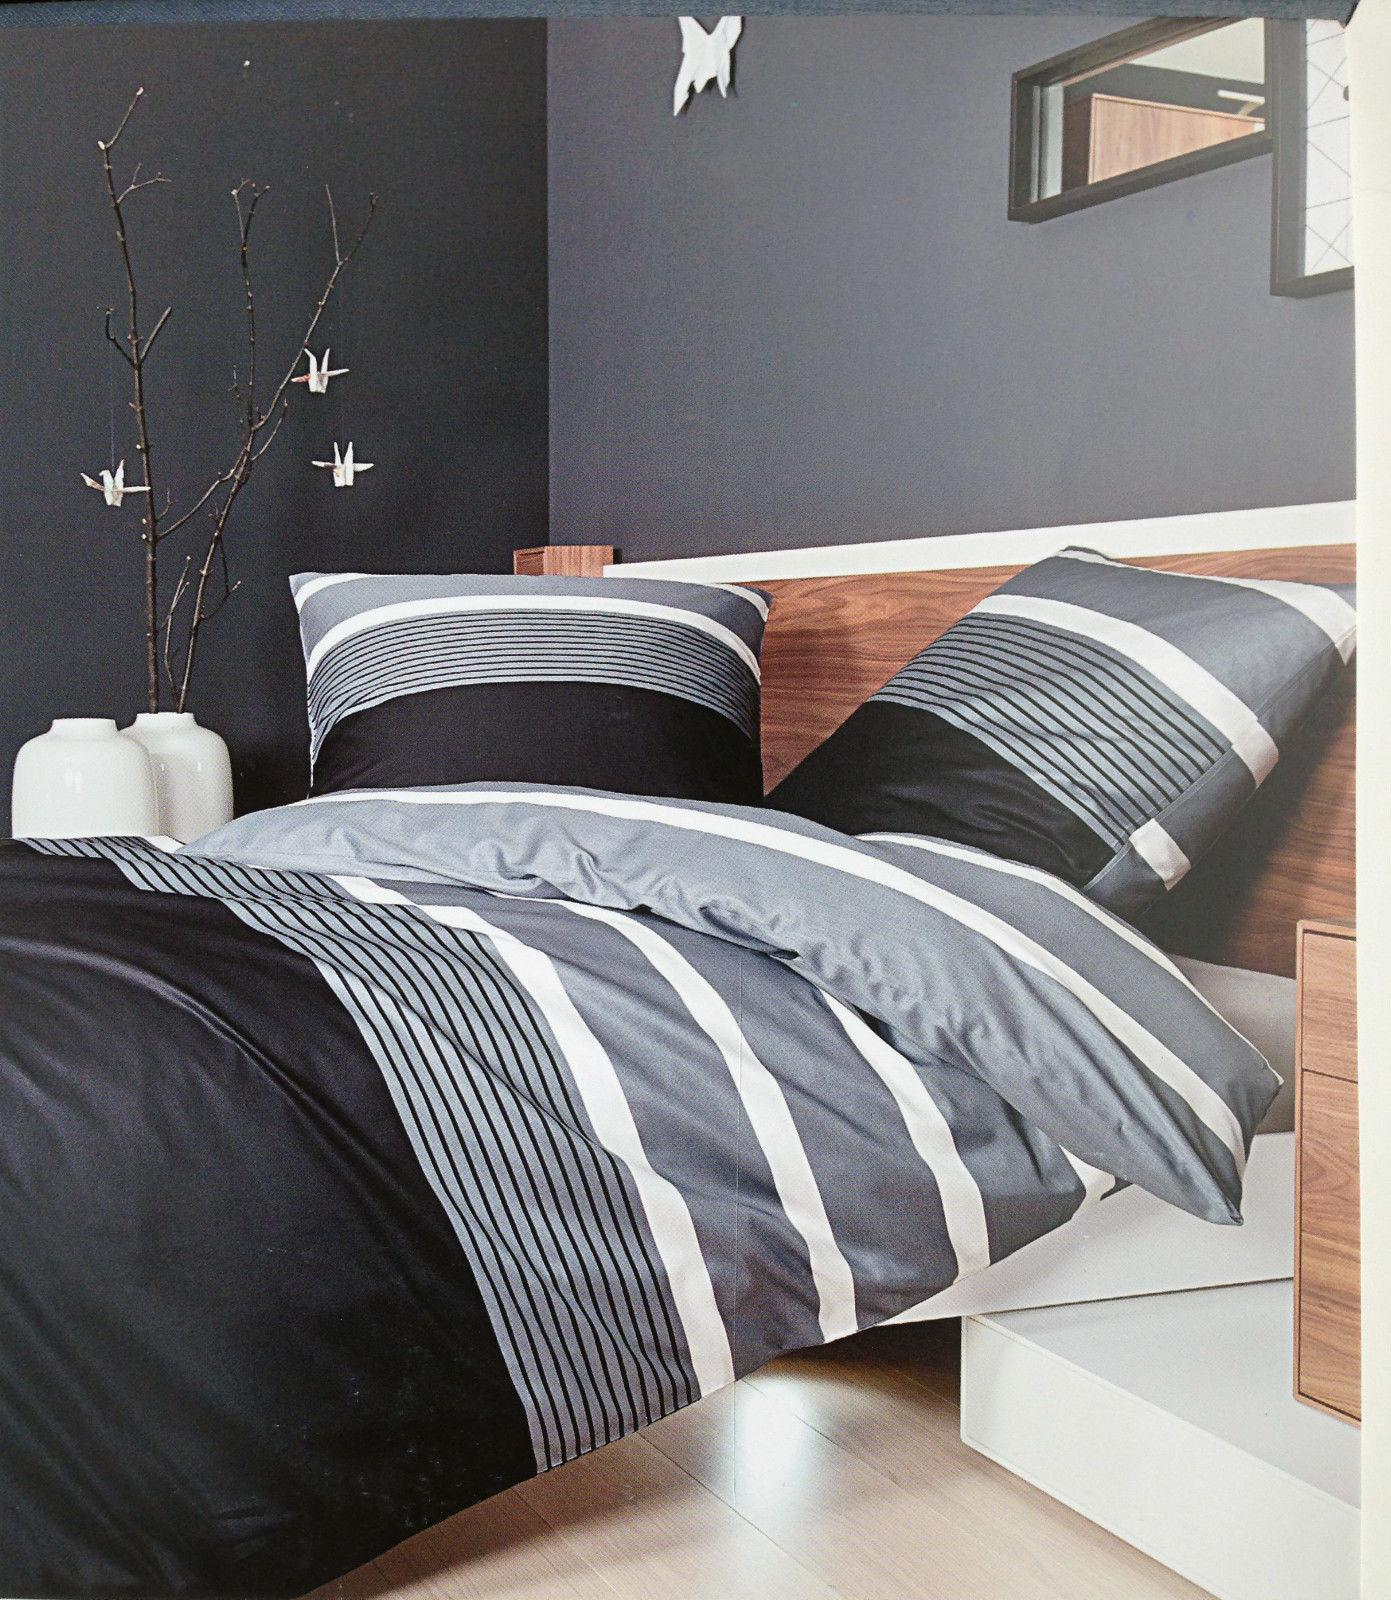 mako satin bettw sche 135 my blog. Black Bedroom Furniture Sets. Home Design Ideas